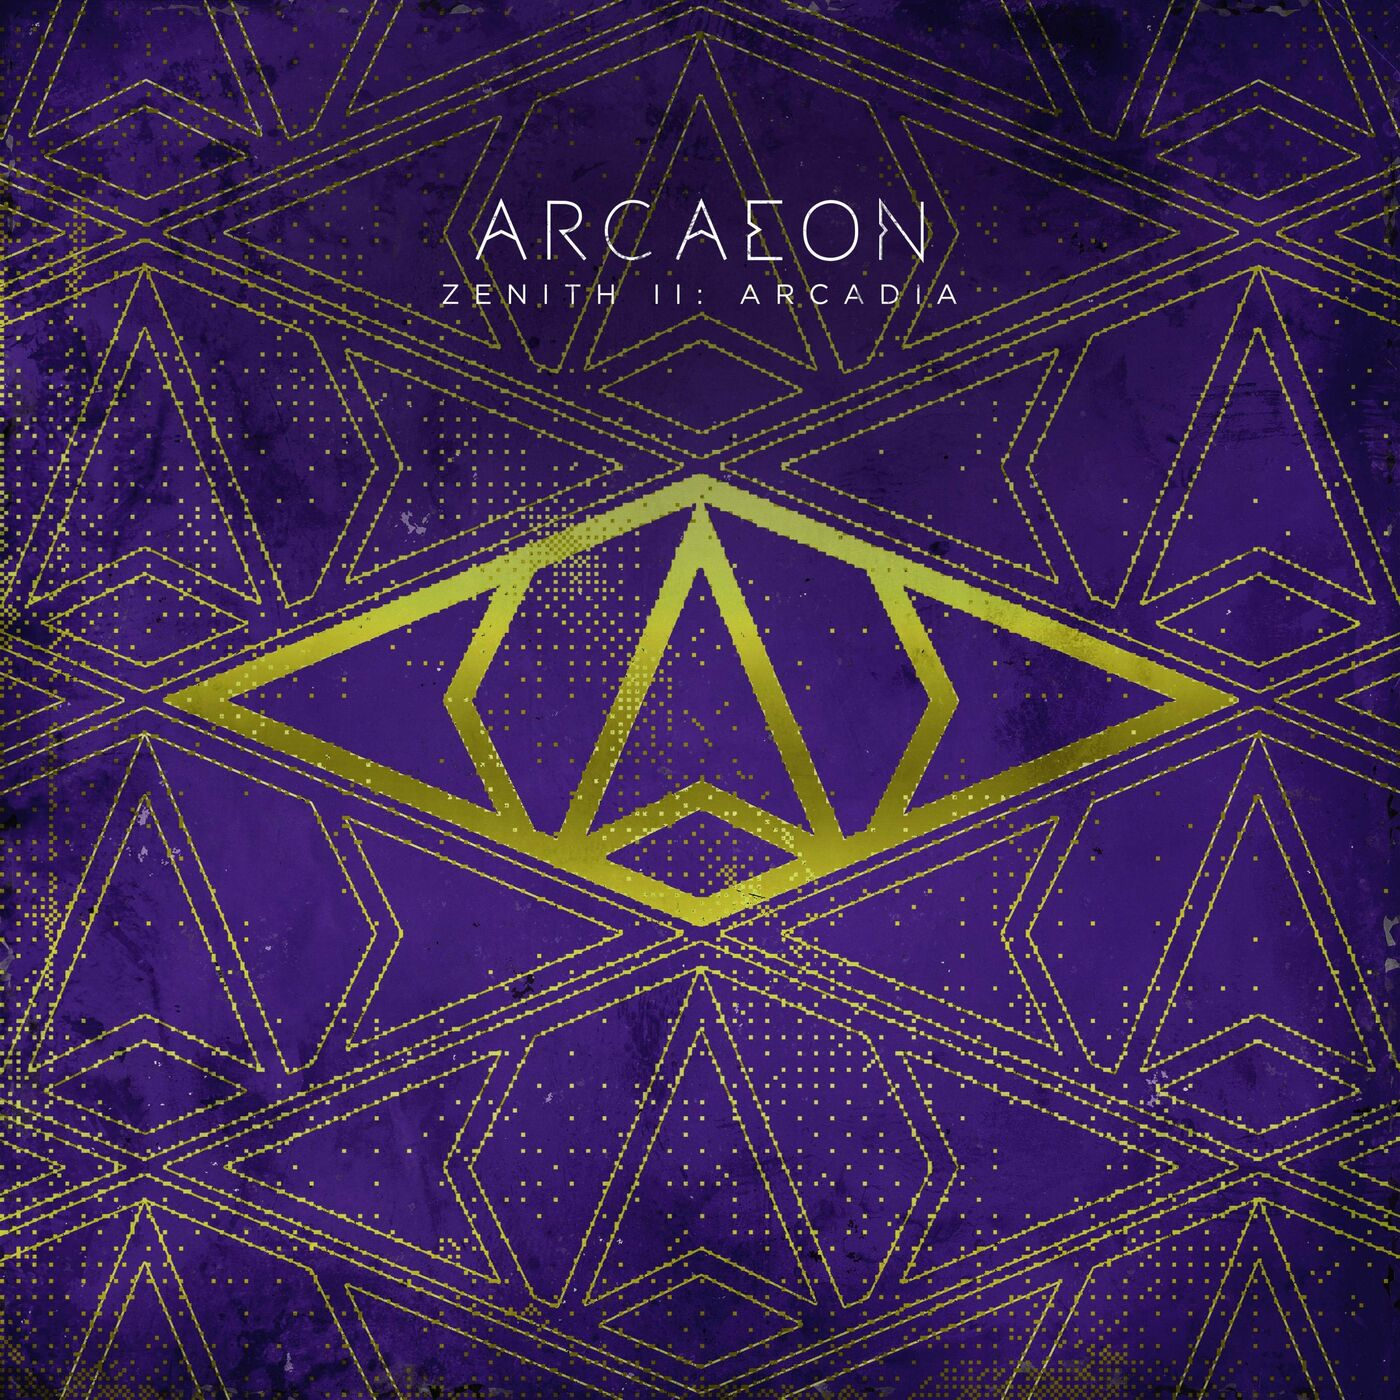 Arcaeon - Zenith II: Arcadia [single] (2021)